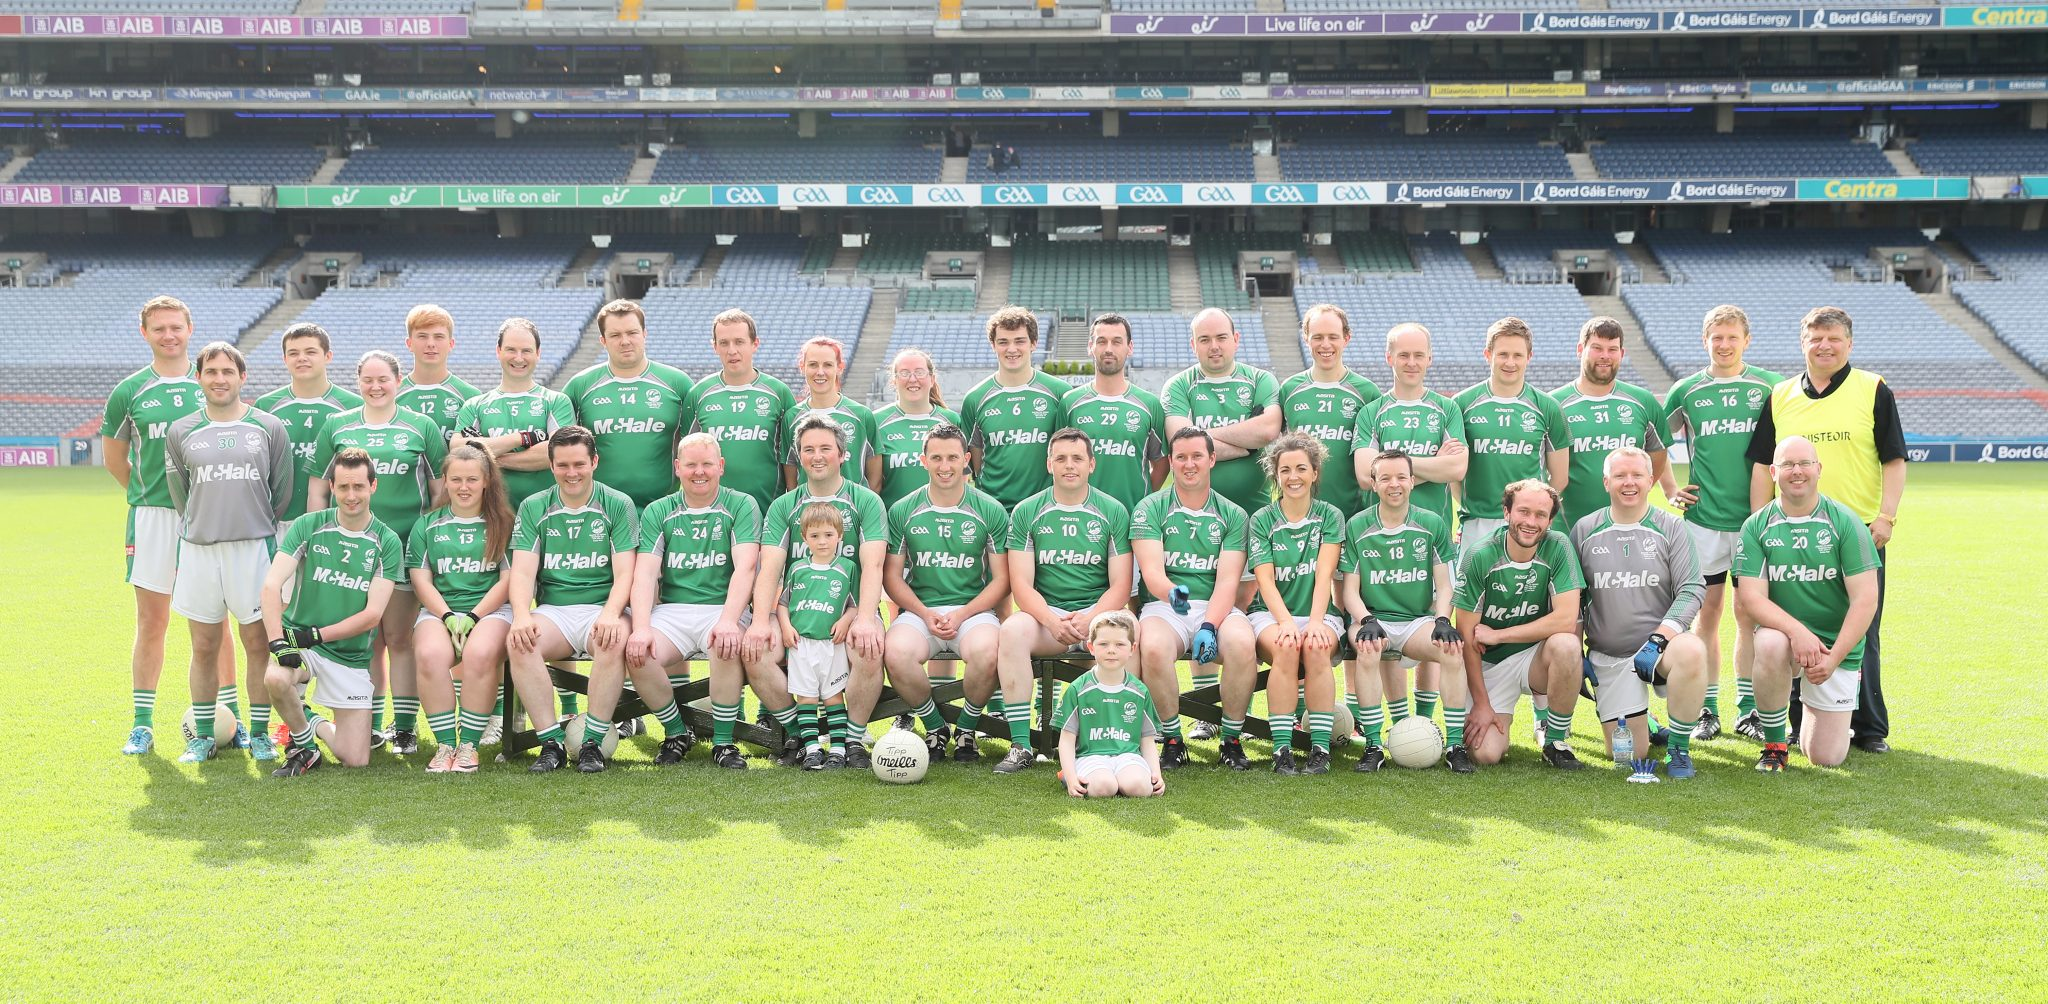 McHale Shamrocks Team